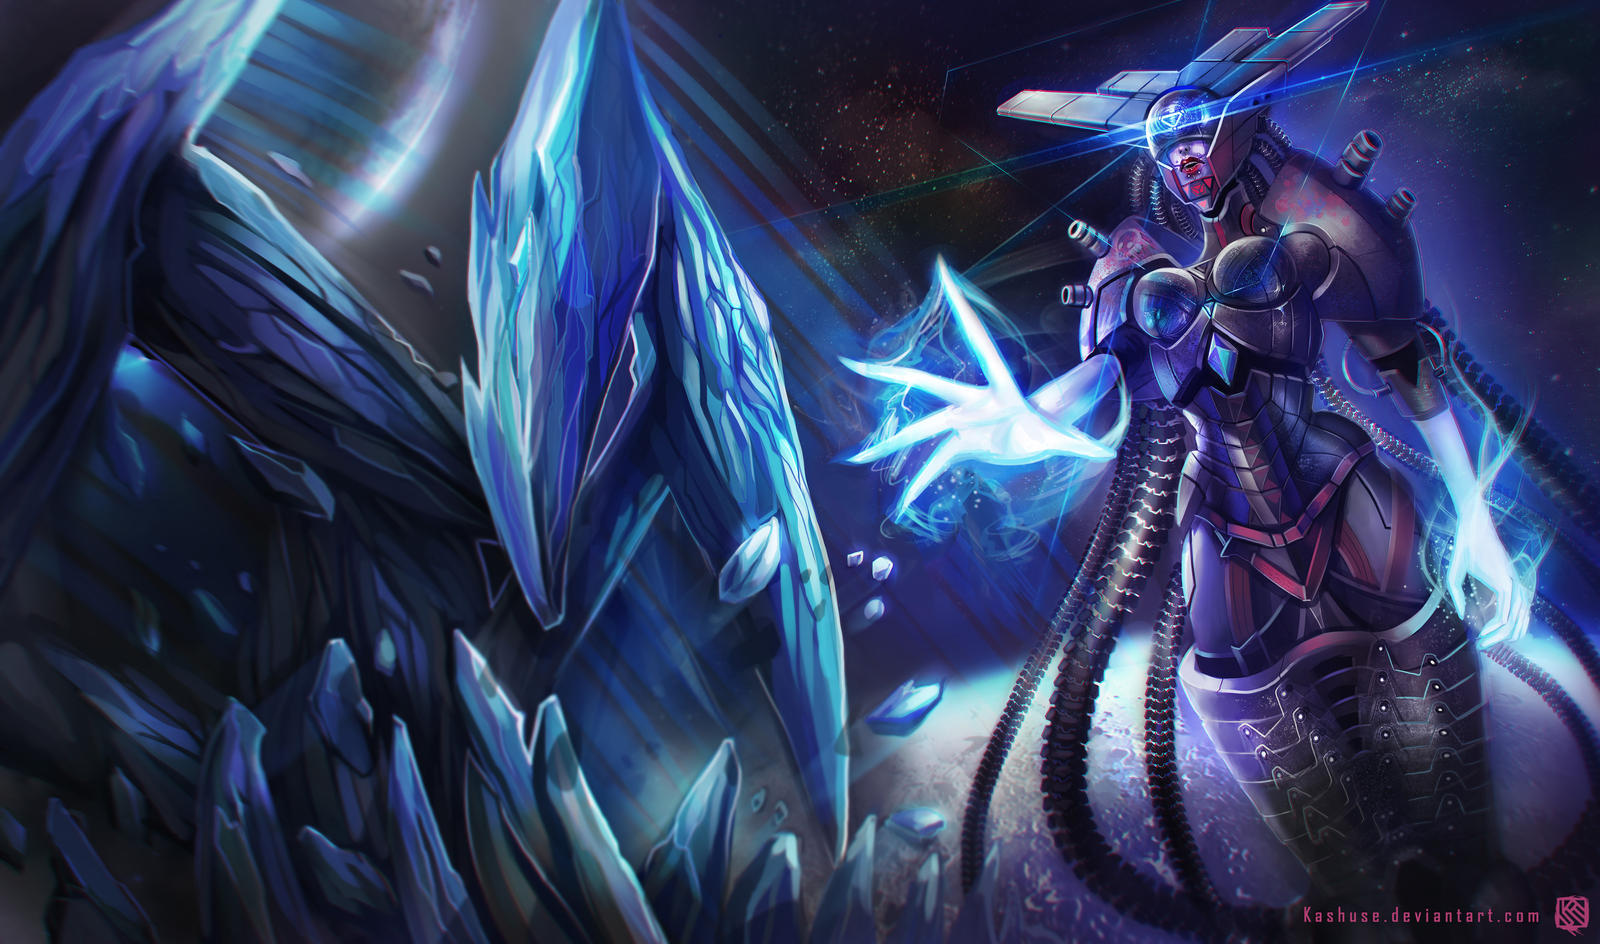 League of Legends_Lissandra_Space Cyborg_Splash by Kashuse ...